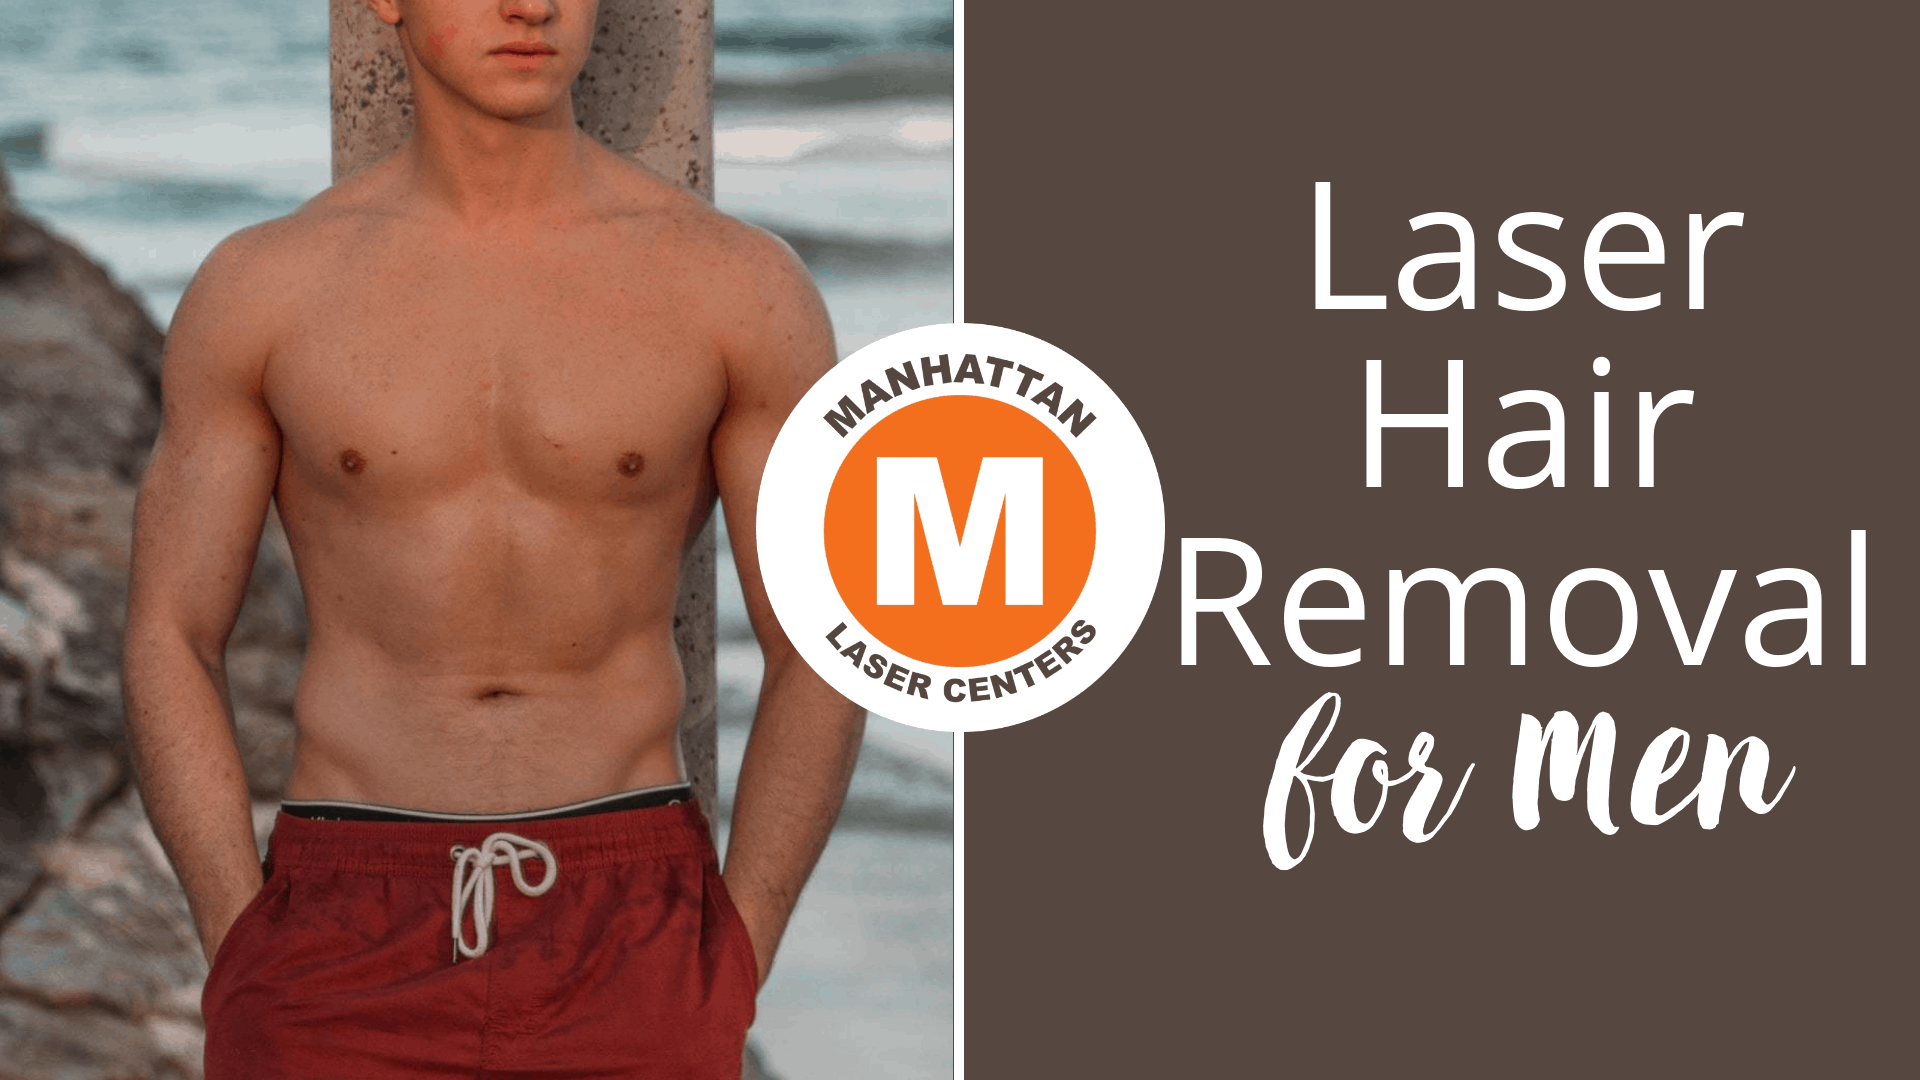 Laser Hair Removal For Men Laser Hair Removal Nyc